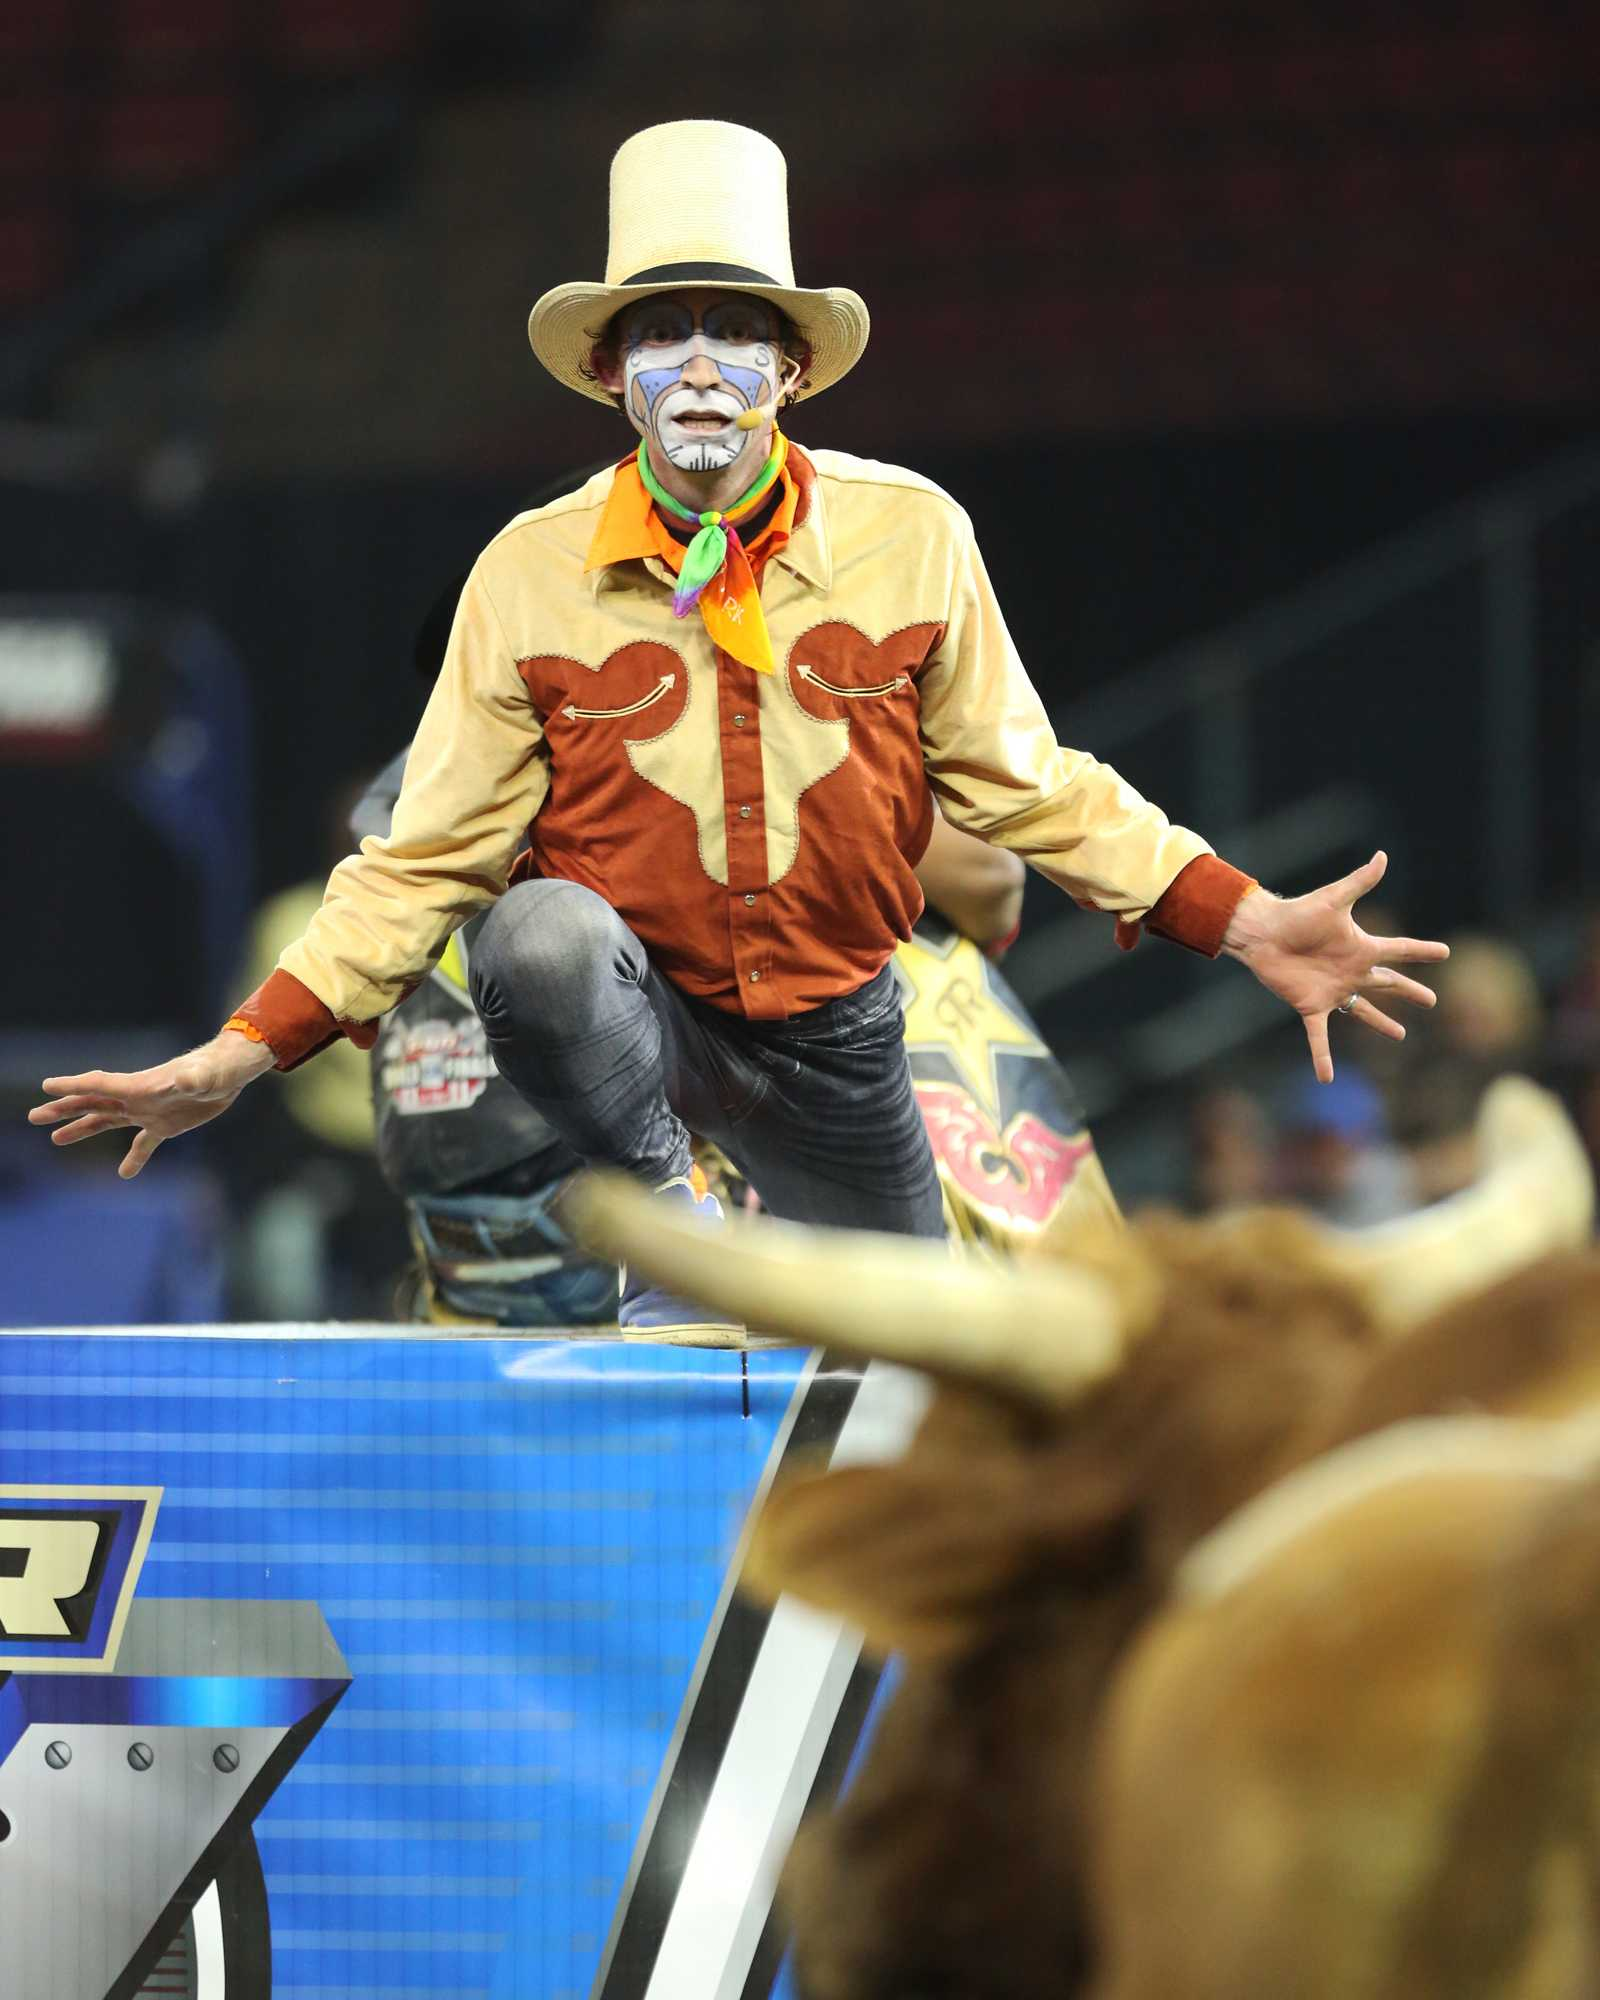 The entertainer for the night taunts the bull as he stands in the center cage of for safety.